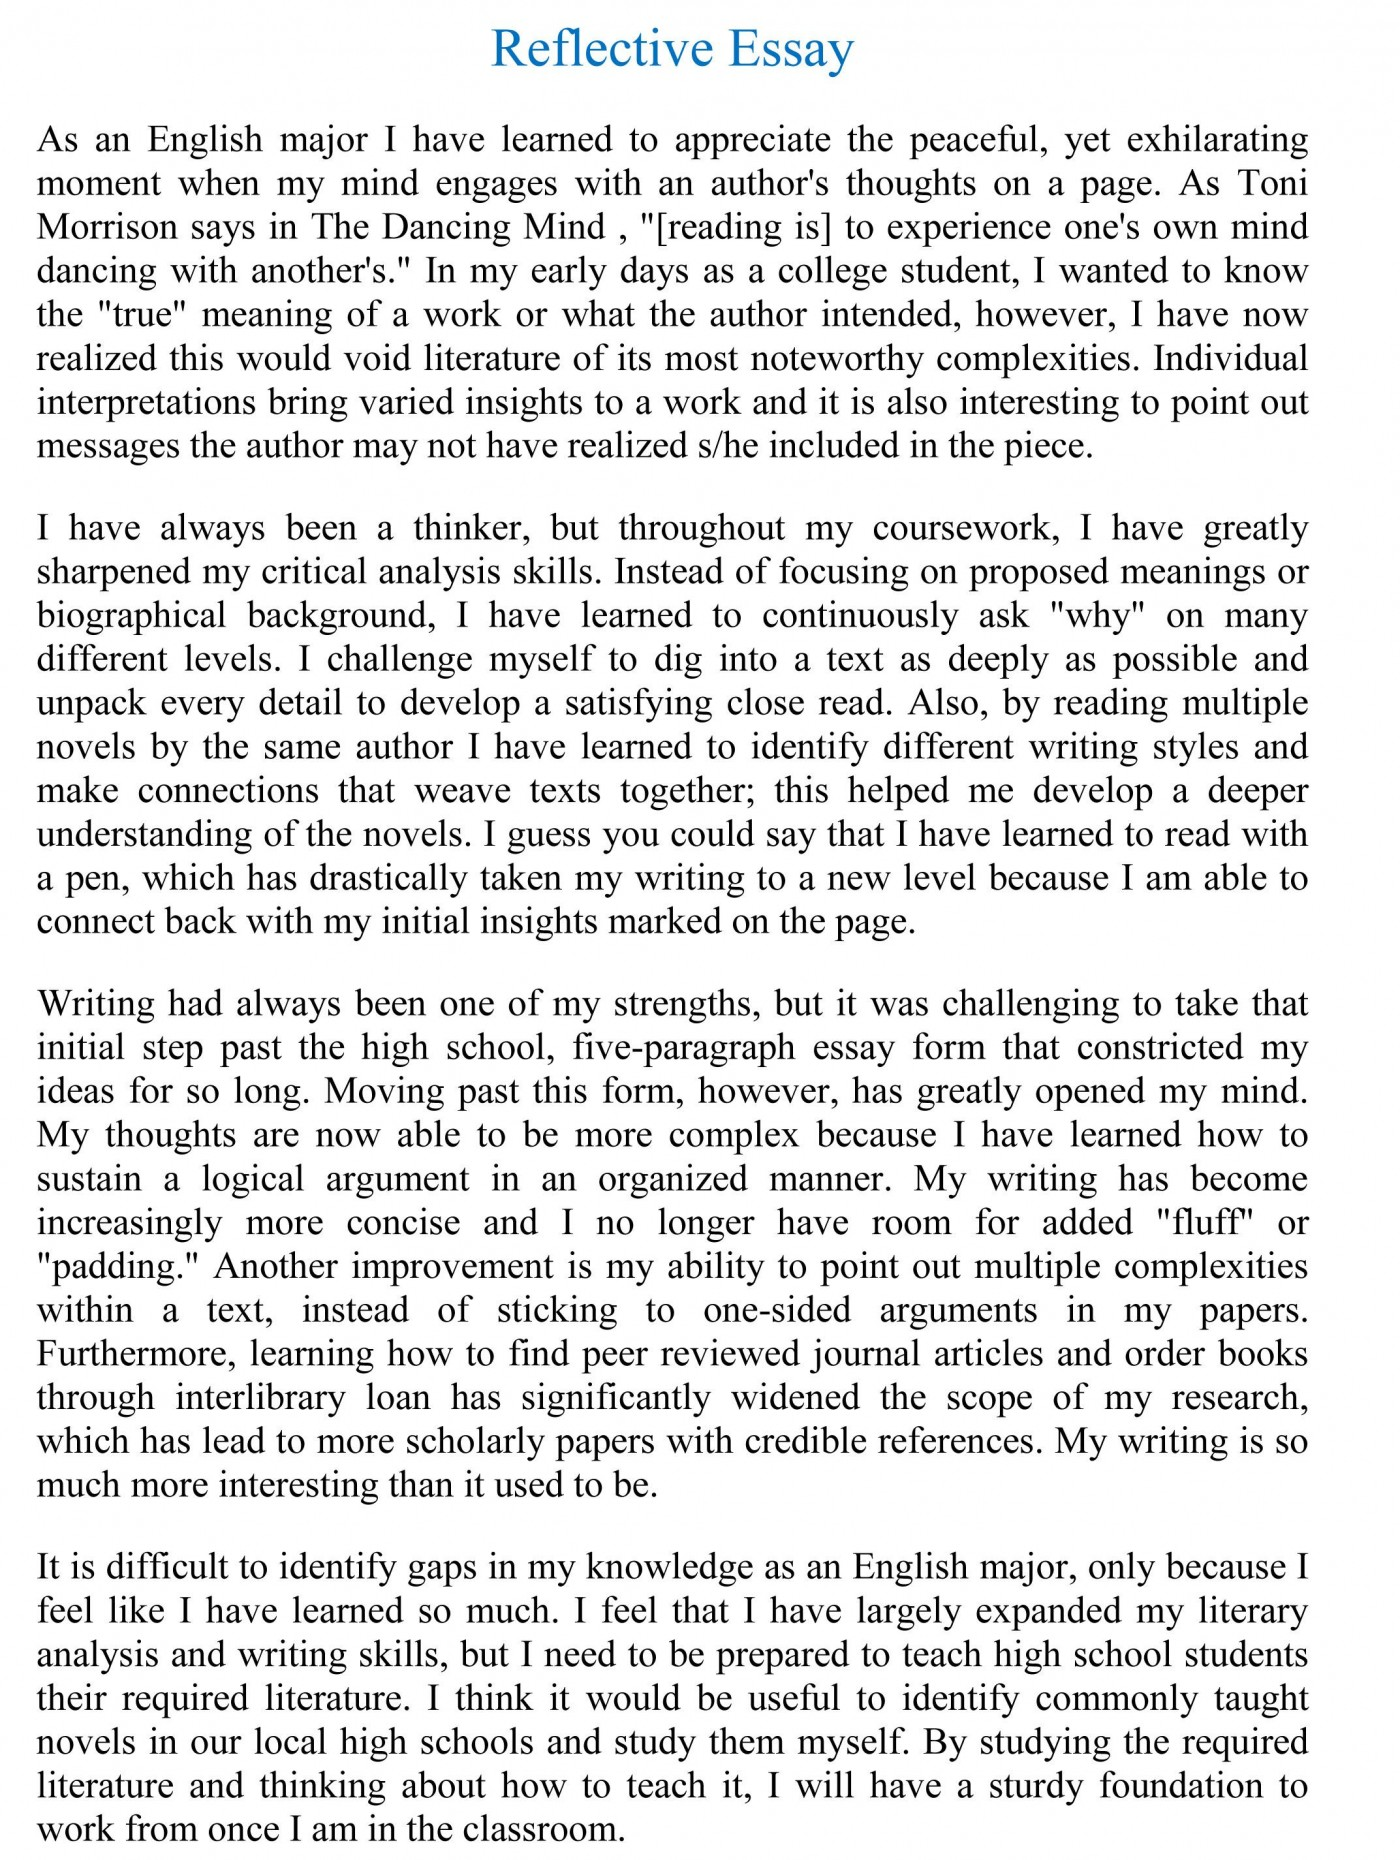 007 Reflective Essay Examples Example Beautiful Sample Pdf About Writing English 101 1400